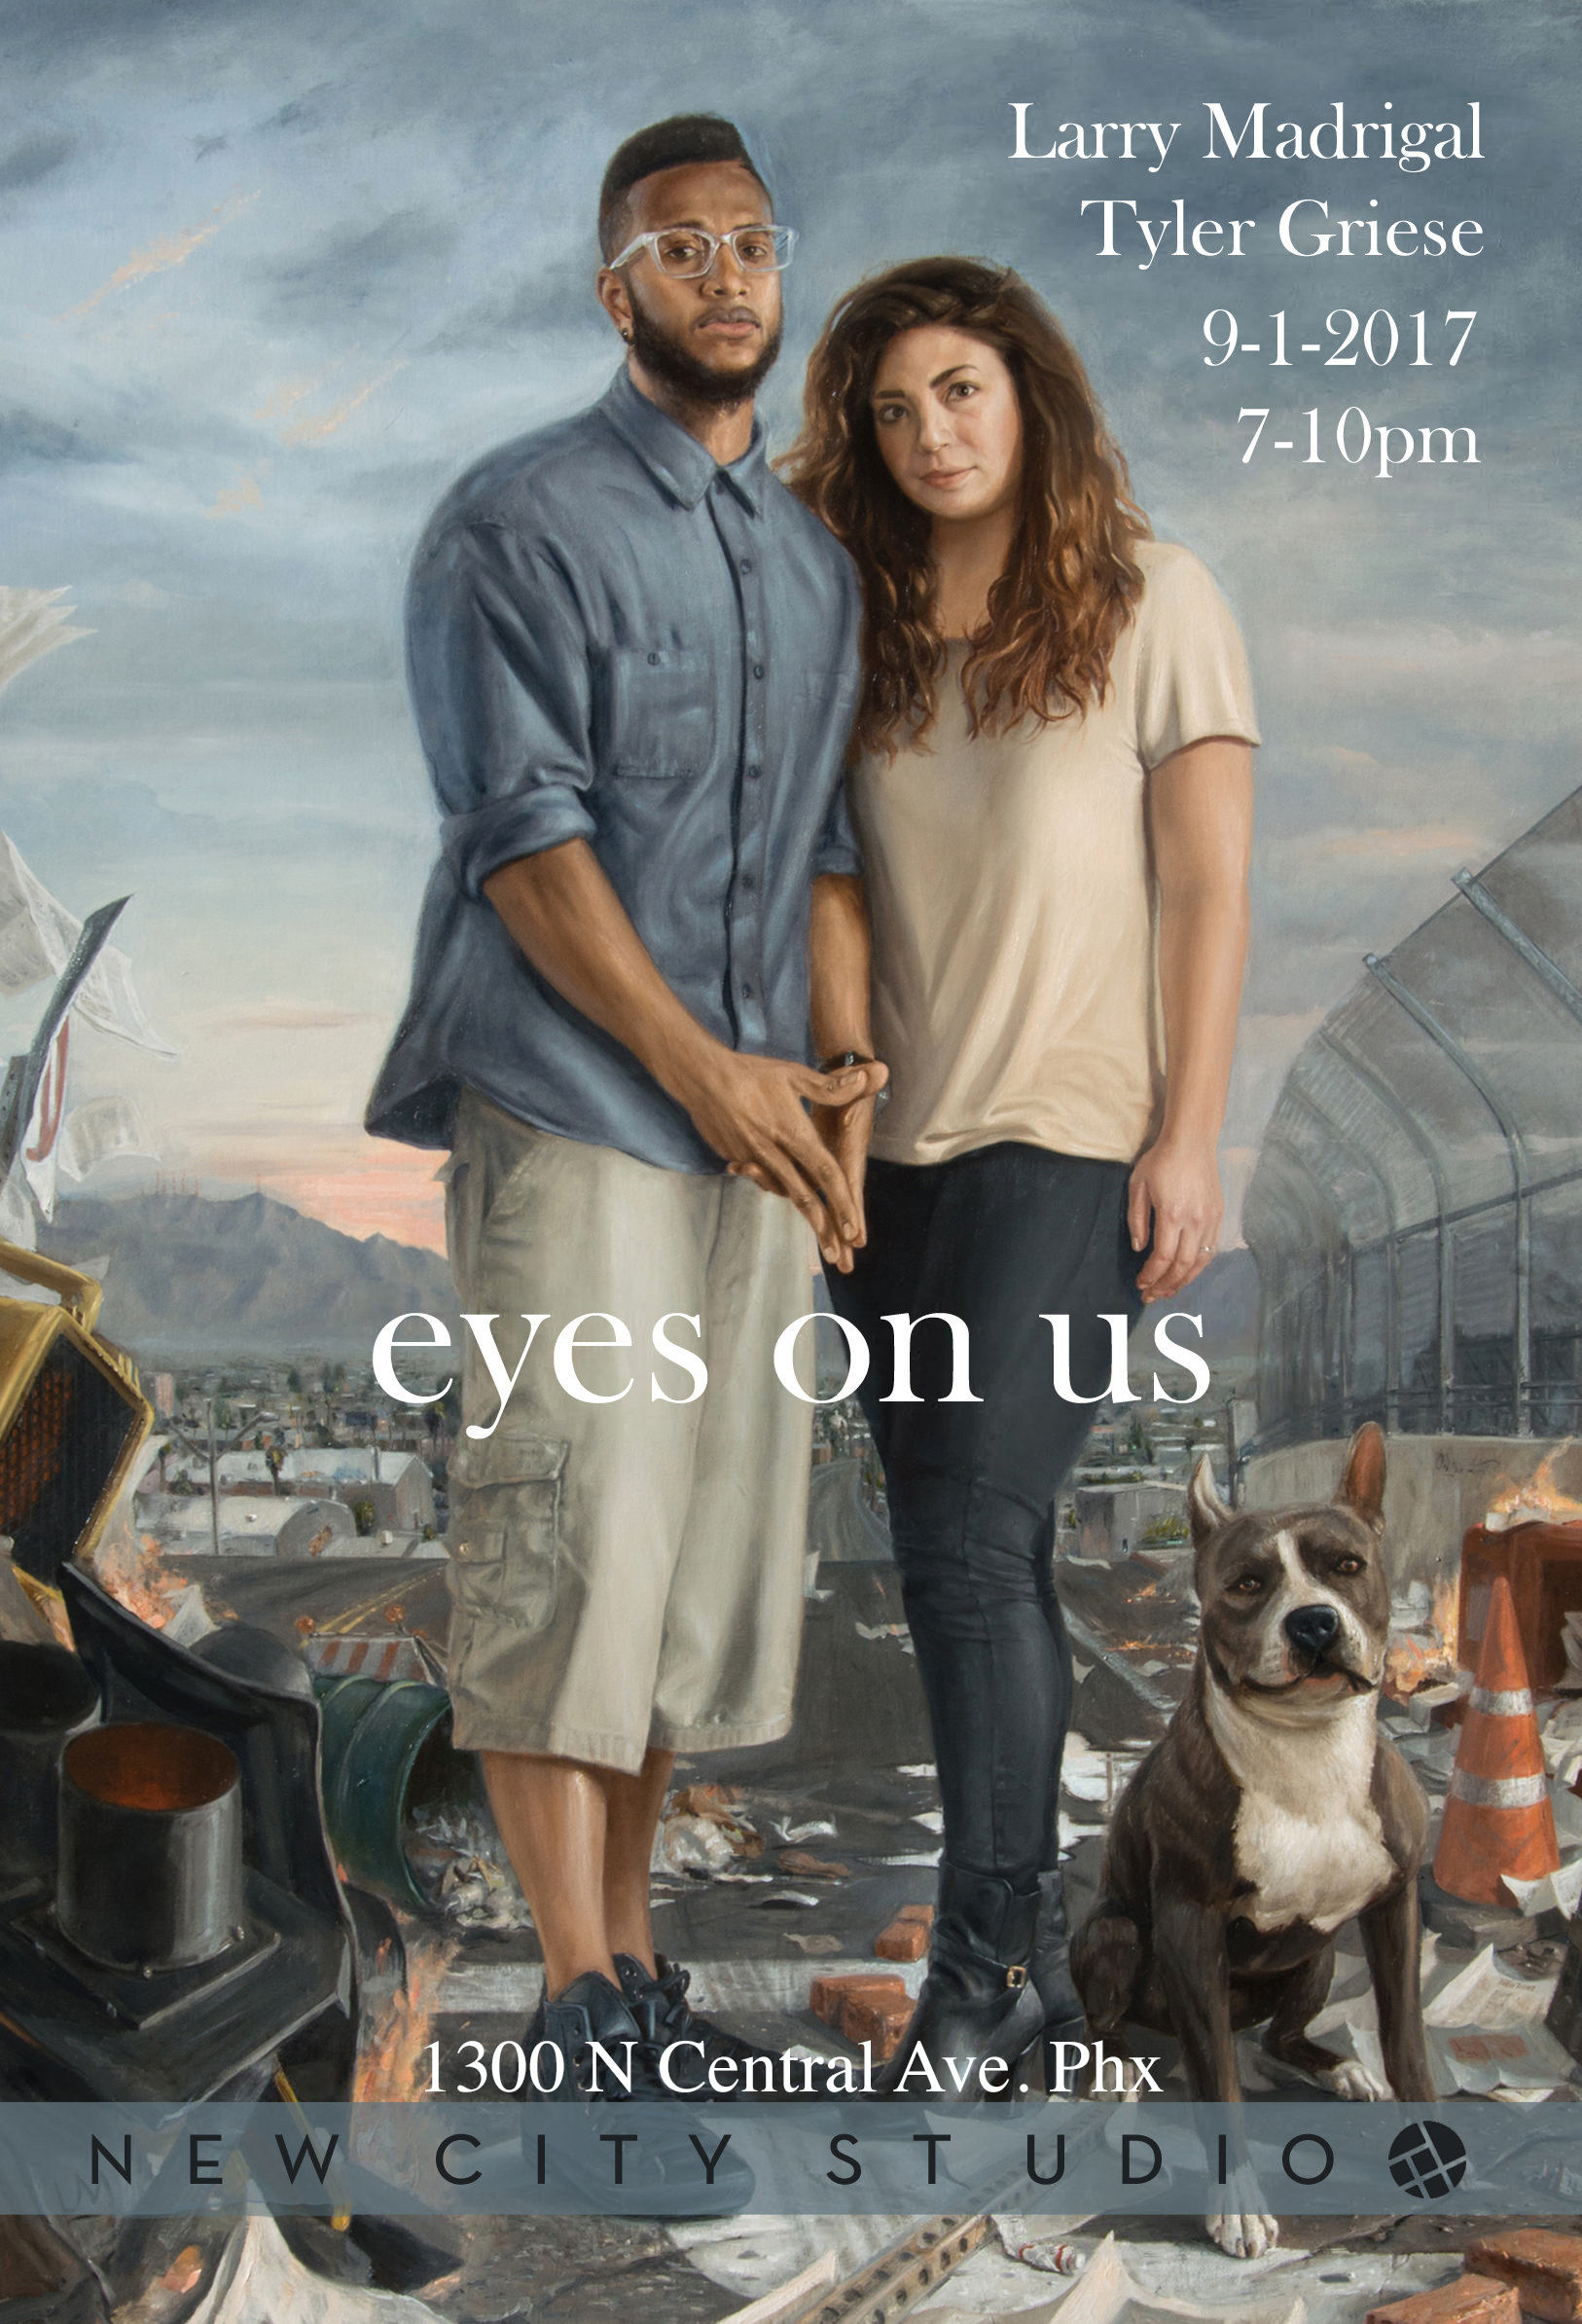 """I invite you all to come see my upcoming two-person show with  Tyler Griese  at  New City Studio  in Phoenix, Arizona!""""Eyes on Us"""" is an exhibition exploring contemporary portraiture though our different approach in capturing and elevating individuals. Although our styles differ, we both share a deep passion for centralizing the human figure while expressing concern for the idea of personhood and the human condition in art.  I am extremely excited to be showing much of my paintings together for the first time in Phoenix. And better yet, they will be in conversation with the fabulous work of Tyler Griese.  Tyler's paintings contrast between warm and cool tones simultaneously by using colored light to illuminate his figures, enhancing the conceptual possibilities of the human psyche through color and composition. You can check out his work at  www.tylergriese.com    Opening Night: Friday, September 1st, 7 - 10 p.m.  (First Friday)   at    New City Studio 1300 N Central Avenue, Phoenix   as well as Friday,September 15th, 6 - 9 p.m.  (Third Friday).  The show will also be open for viewing on Sundays during New City's Morning Services."""